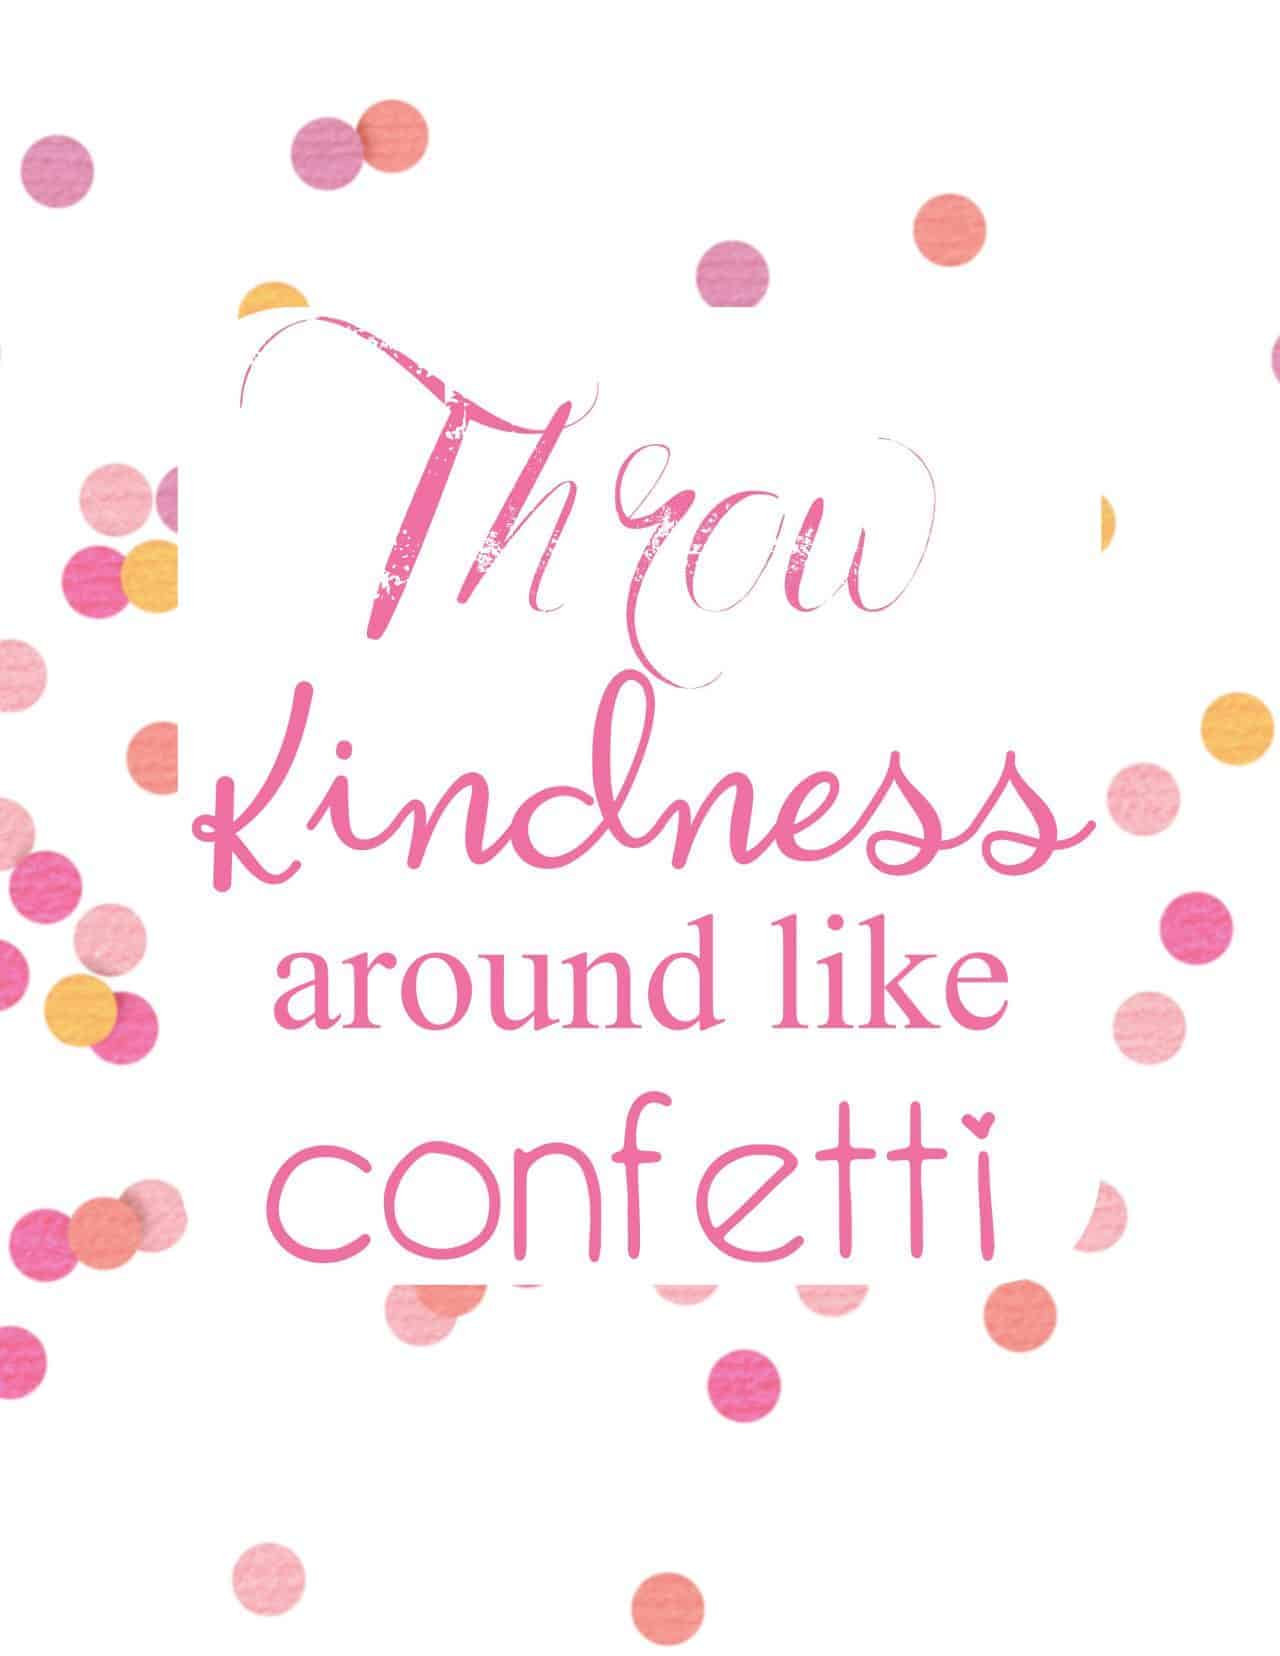 Throw kindness around like confetti free printable with pink confetti and pink lettering